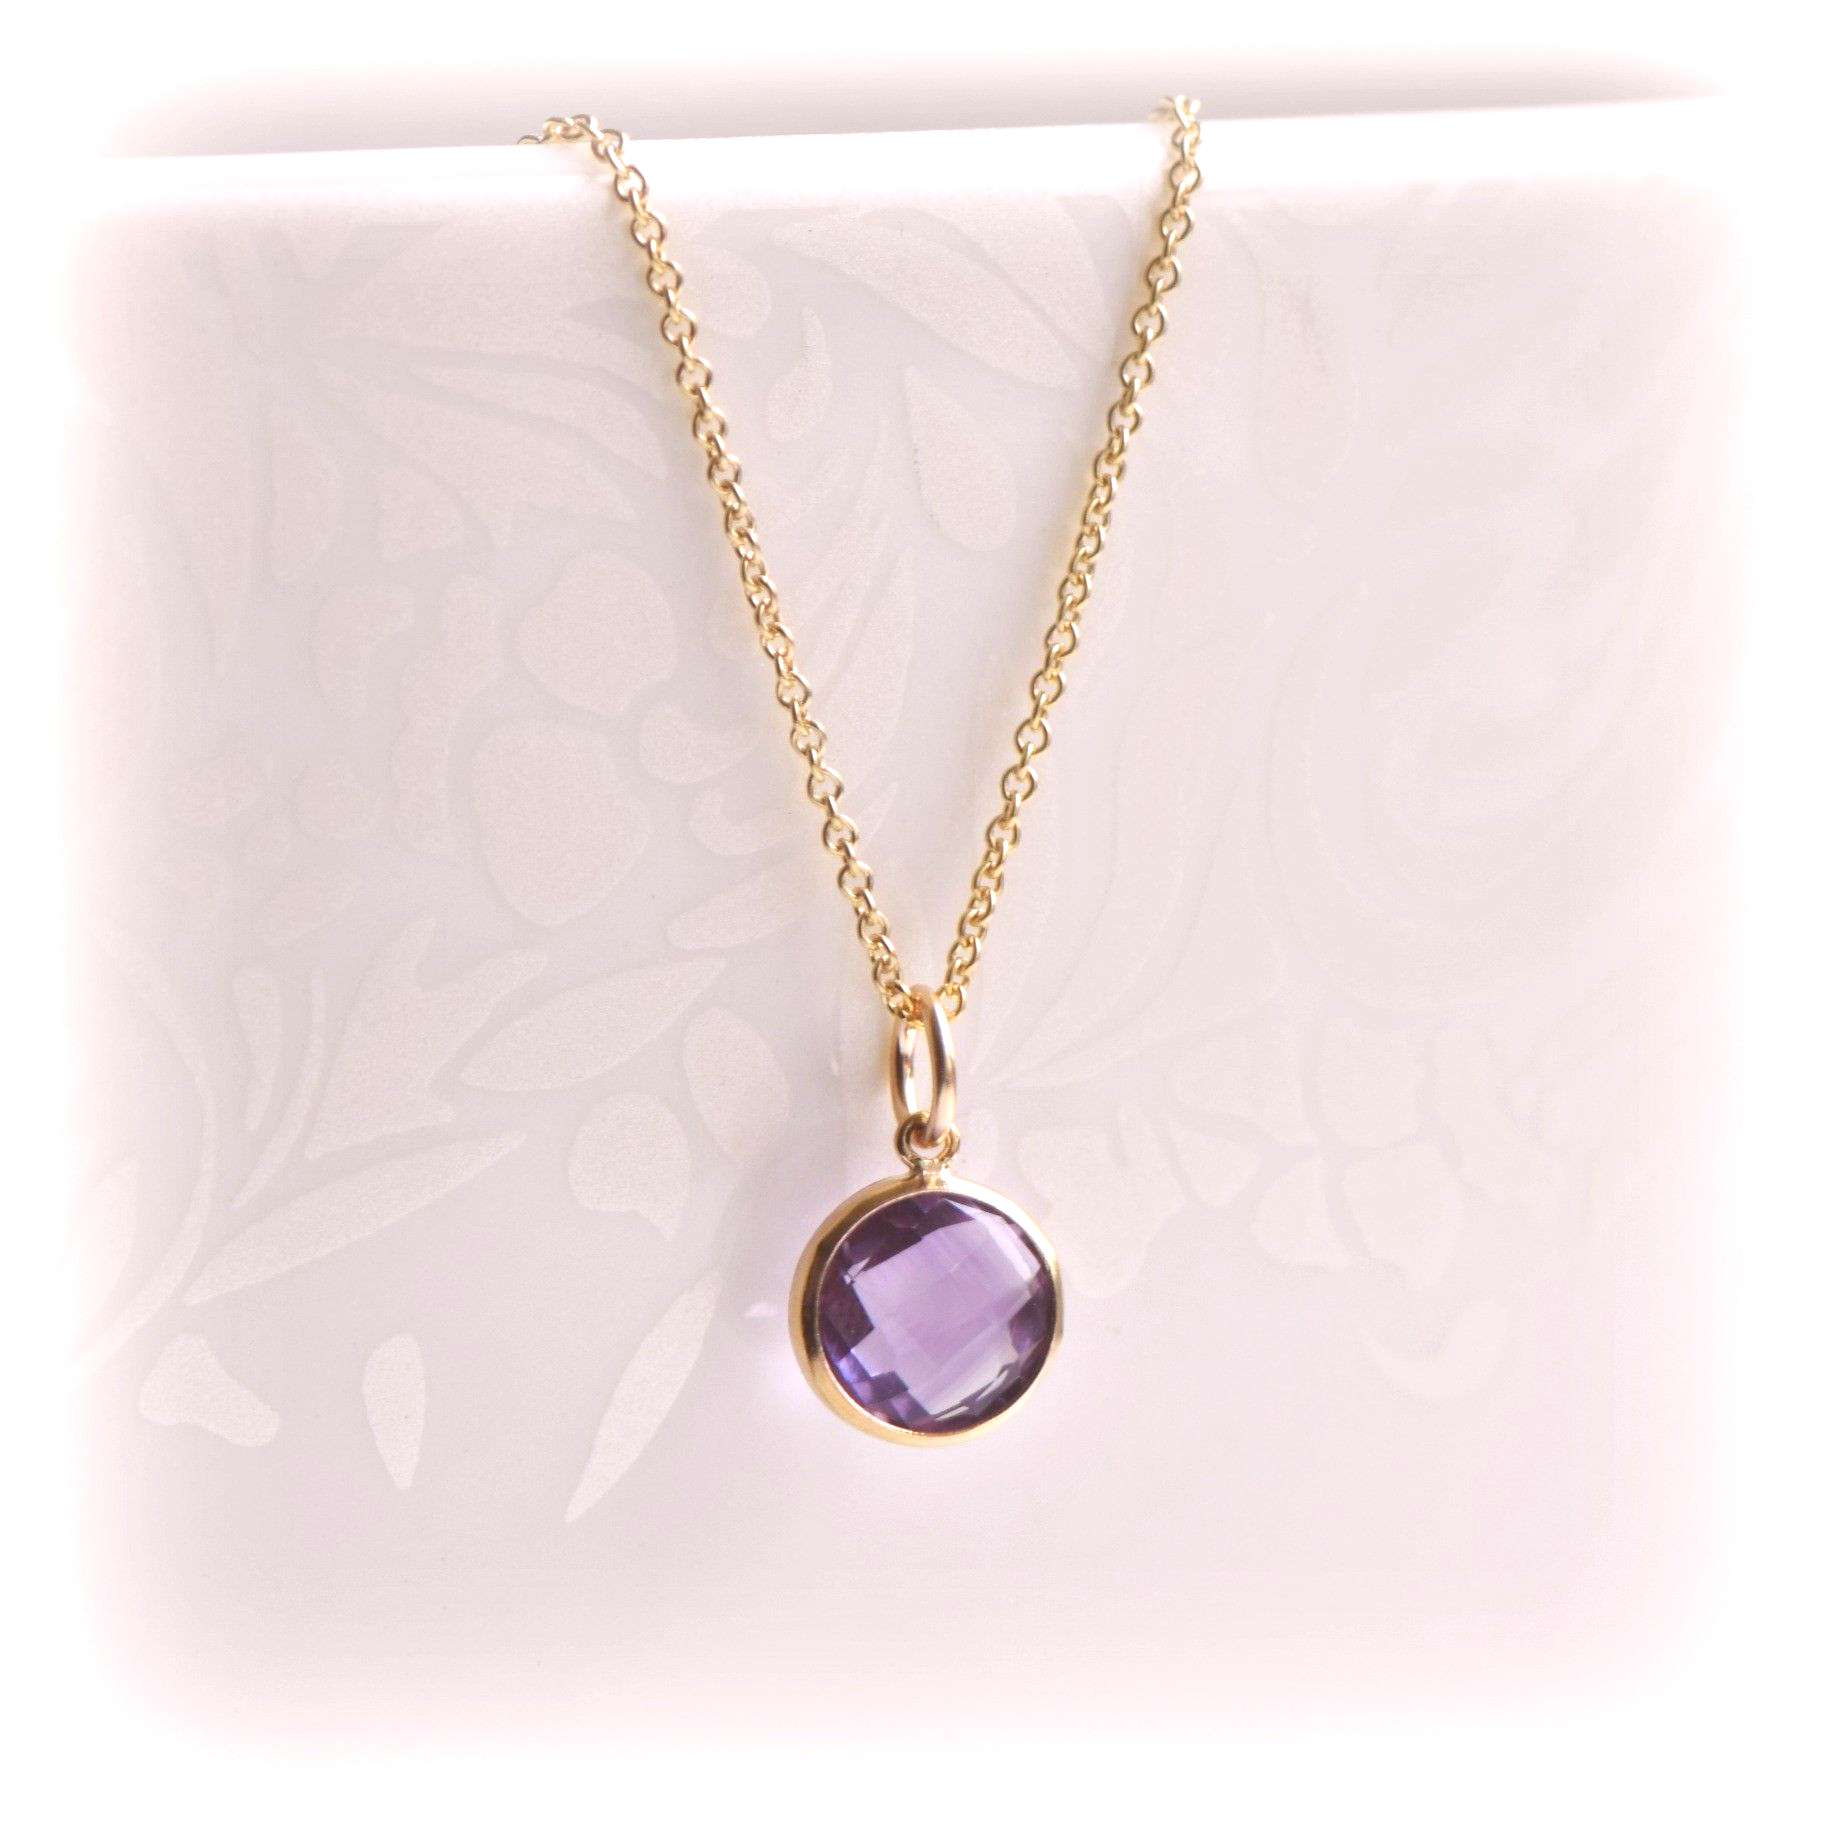 Tiny Amethyst Necklace, Purple Amethyst Pendant in Gold, Birthstone Gift For Her, Amethyst Jewelry